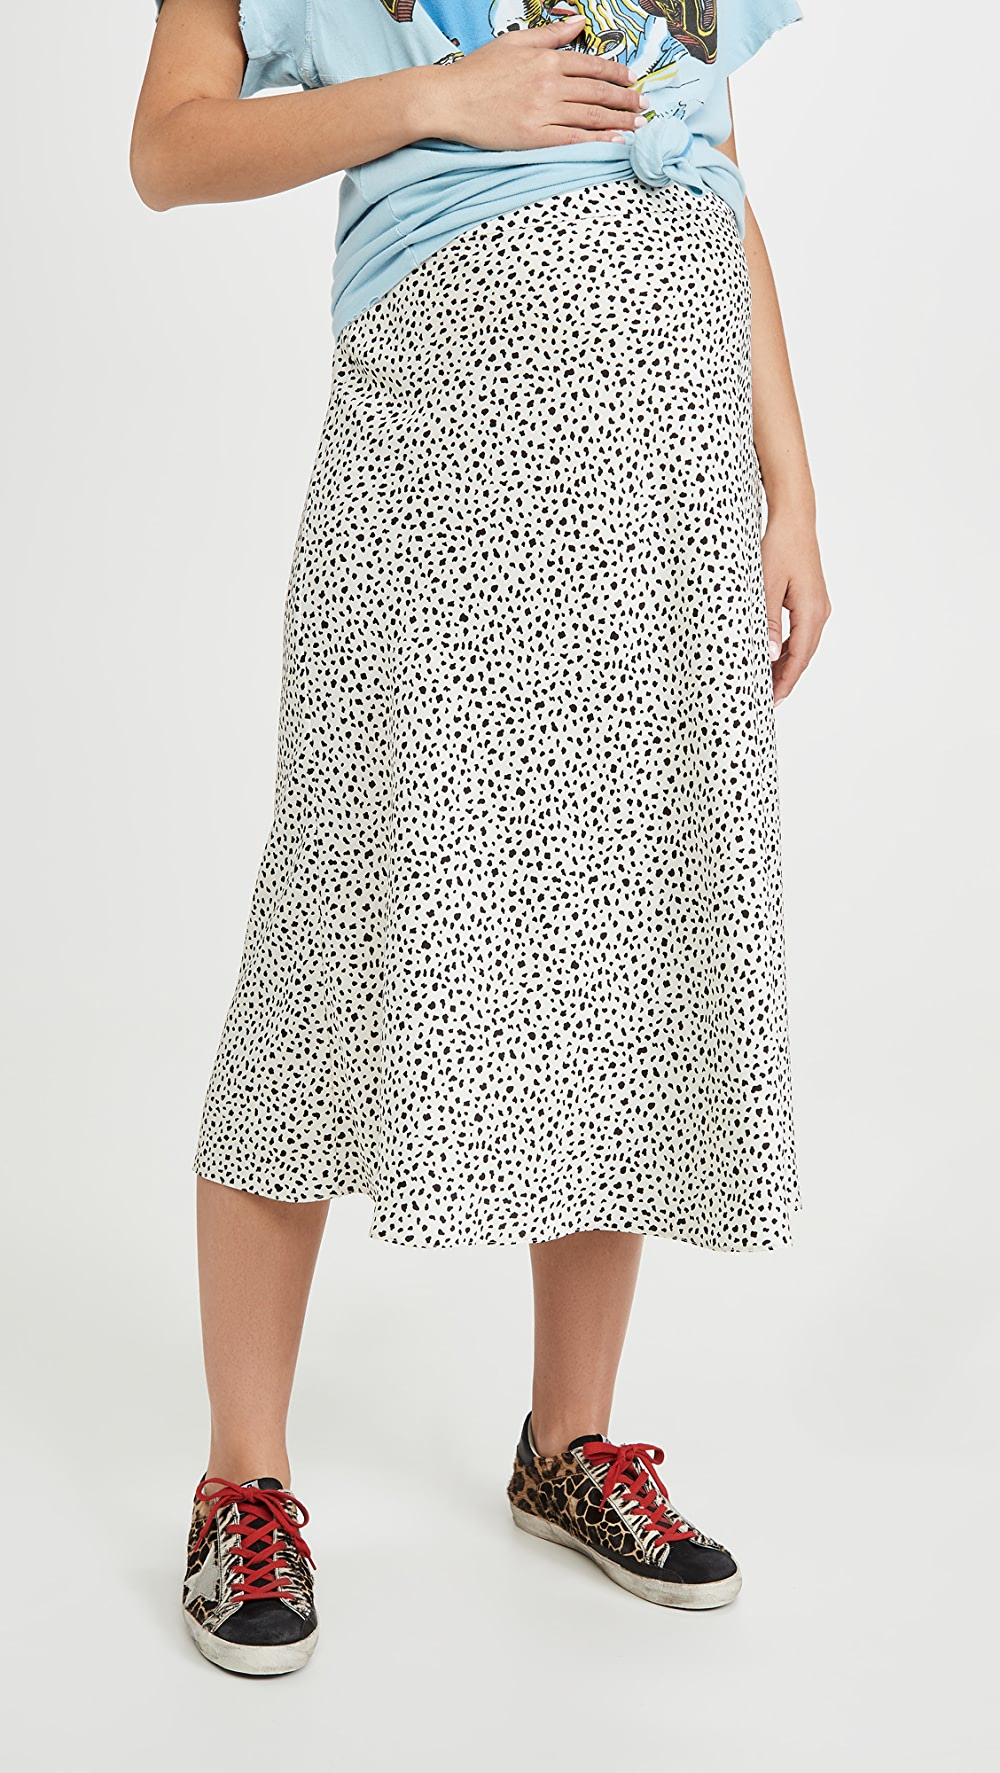 Independent Hatch - The Lucie Skirt To Rank First Among Similar Products